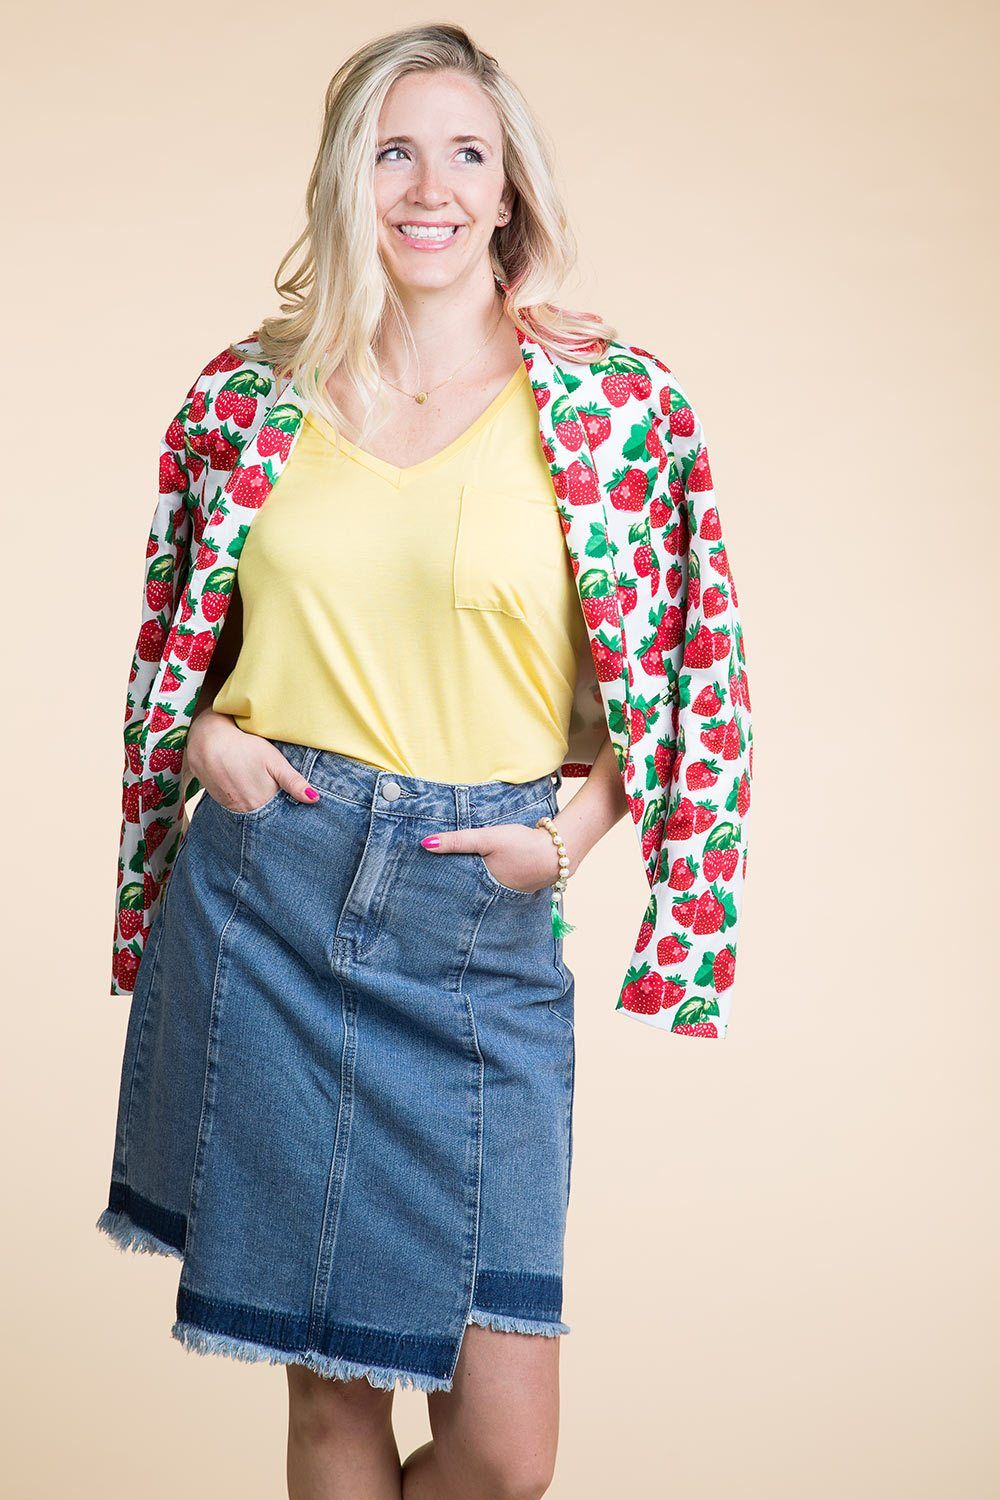 Type 1 Strawberry Sun Outfit. Dressing Your Truth offers